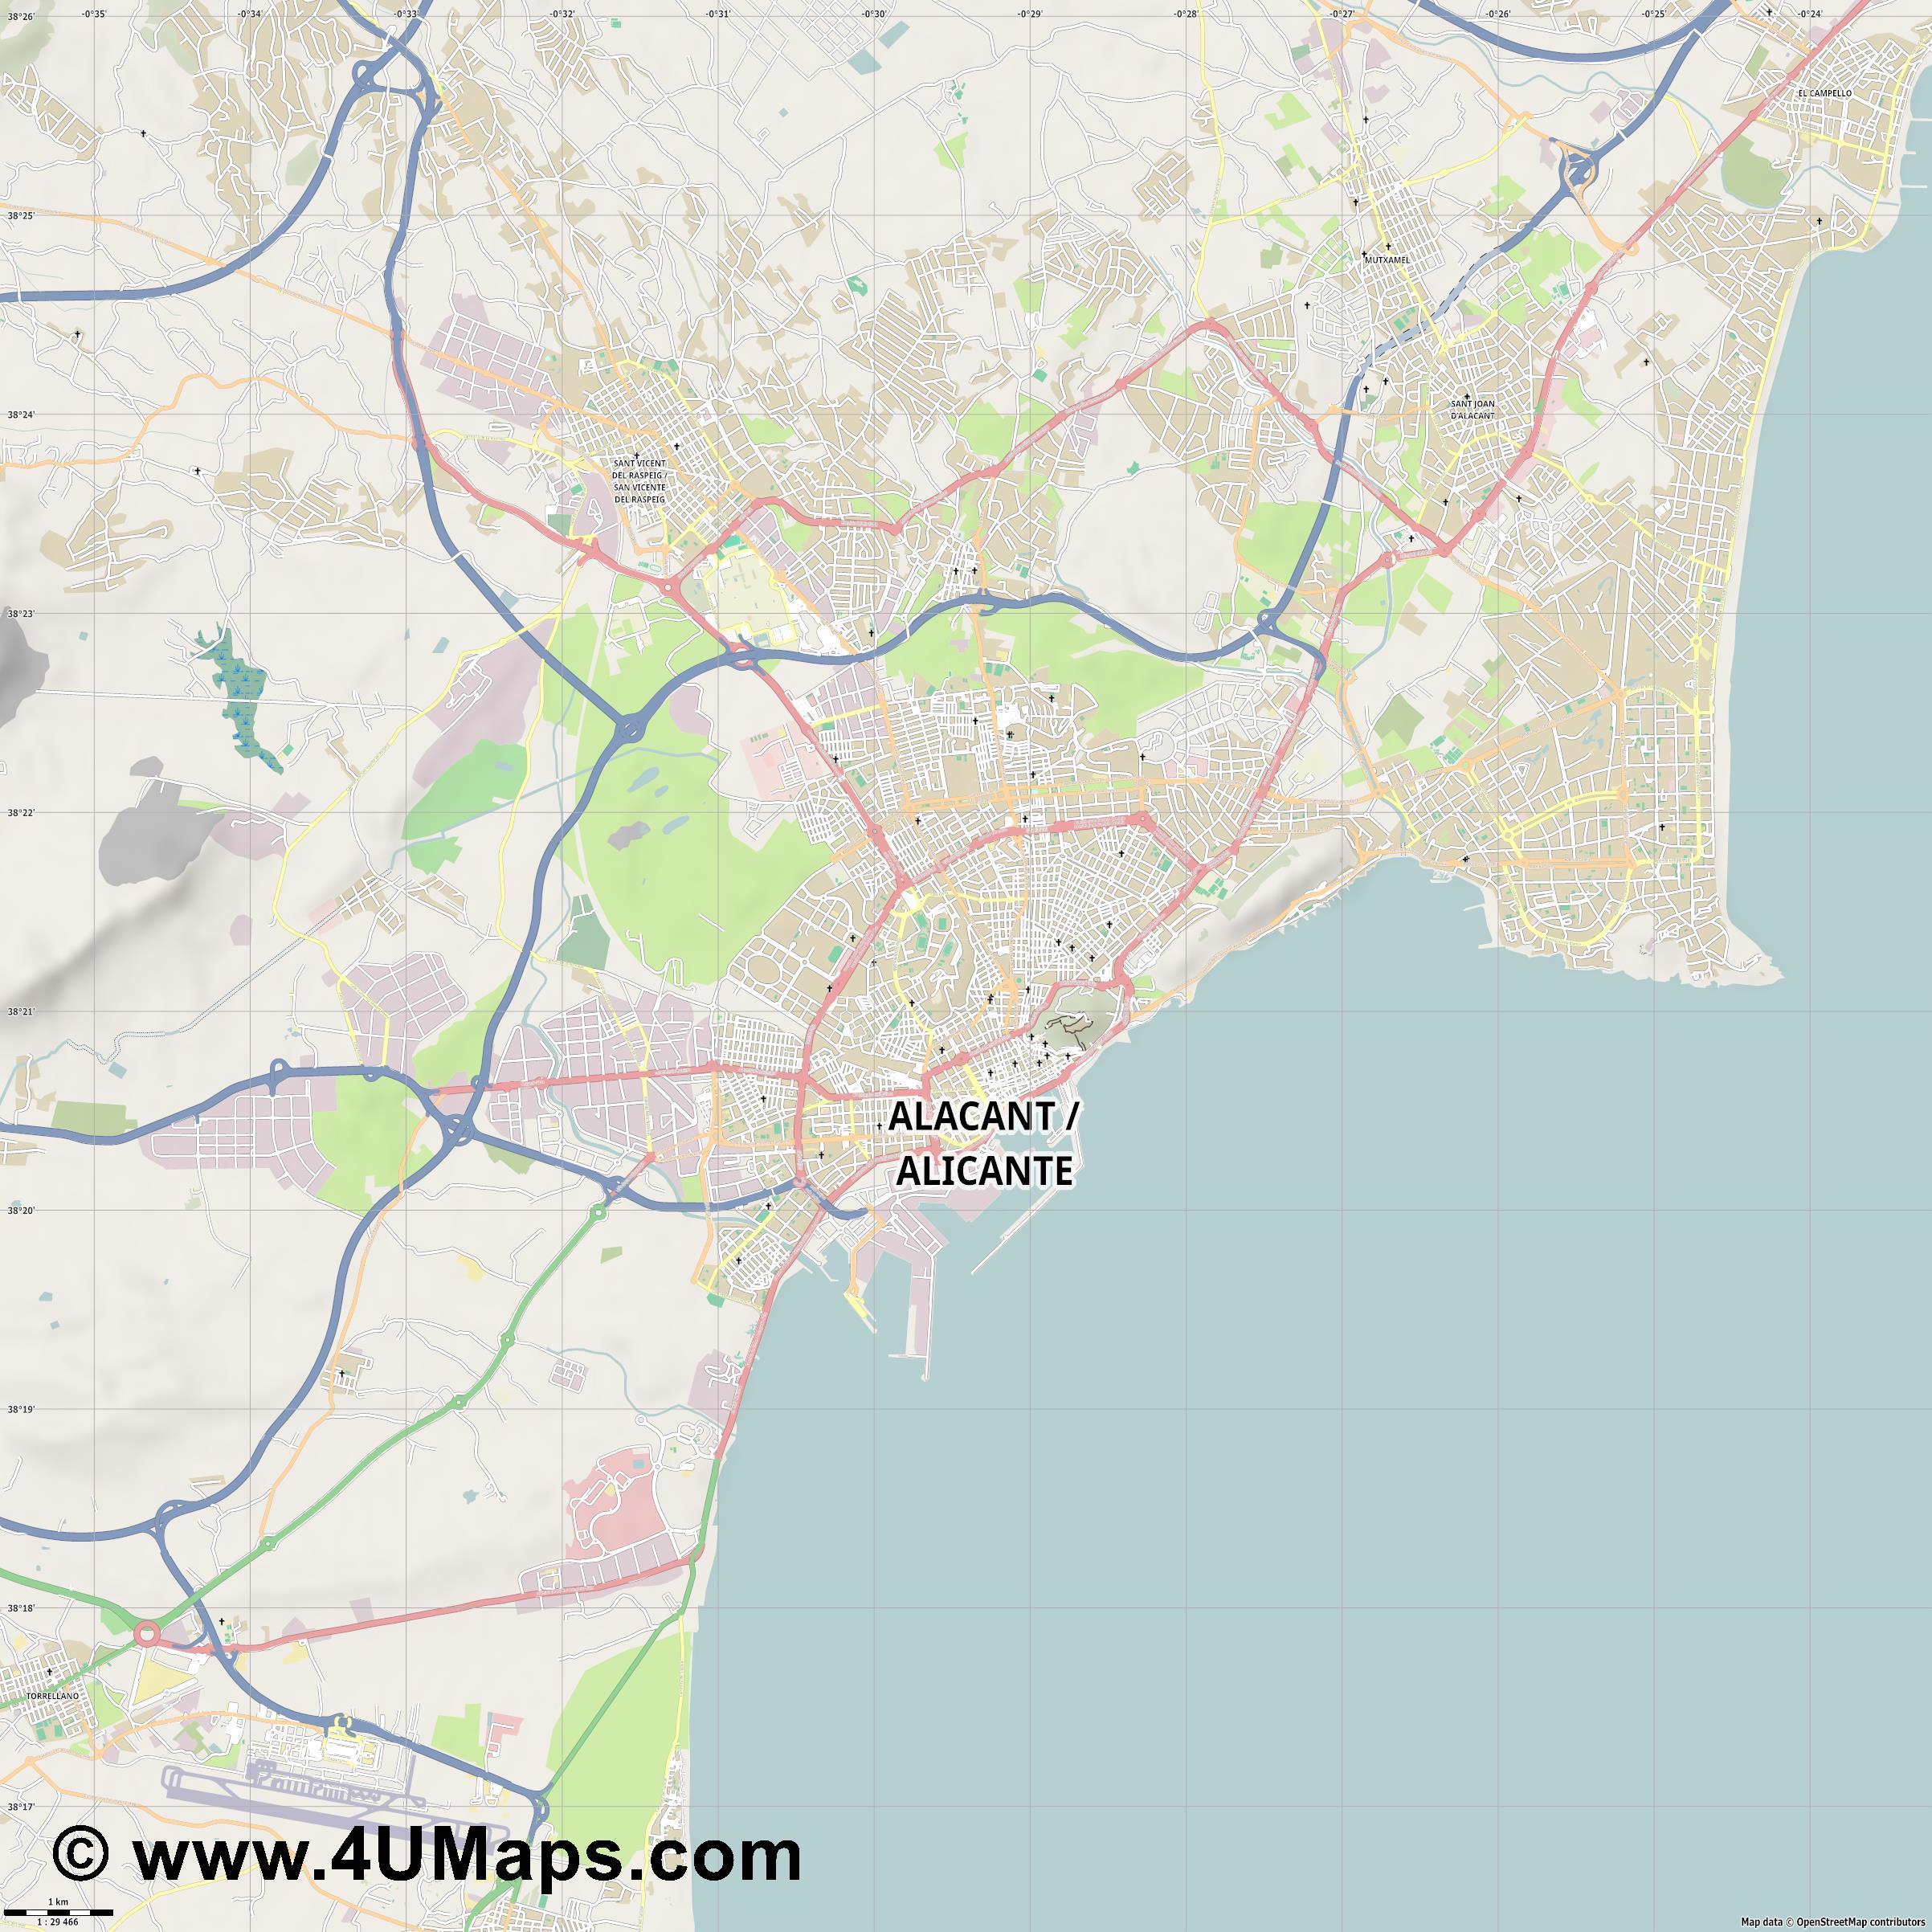 Alacant Alicante  jpg high detail, large area preview vector city map